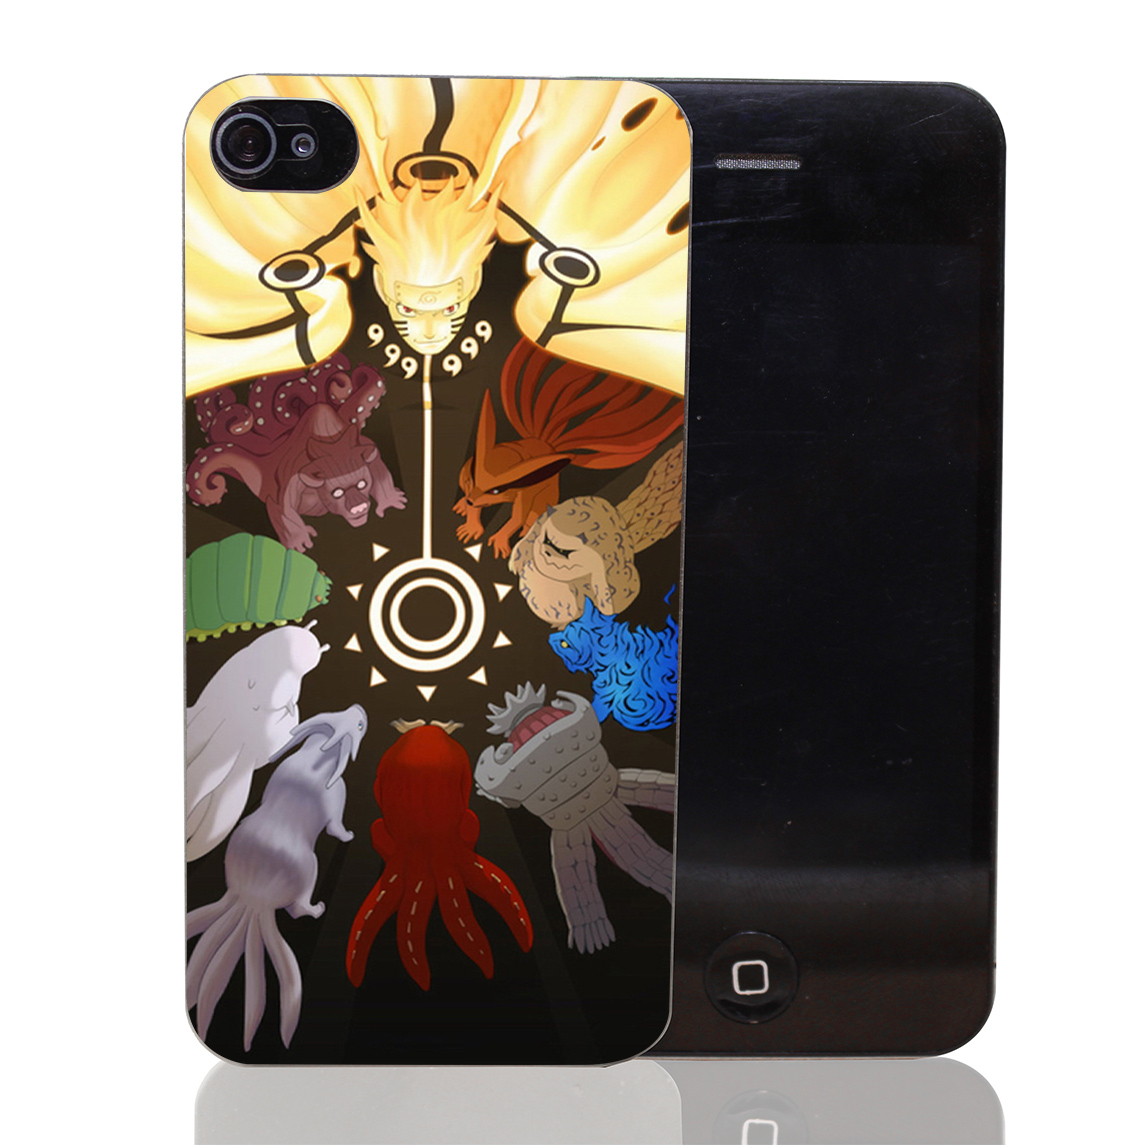 Anti Knock Protect Cover Gaara Naruto for iPhone 6 6S 7 8